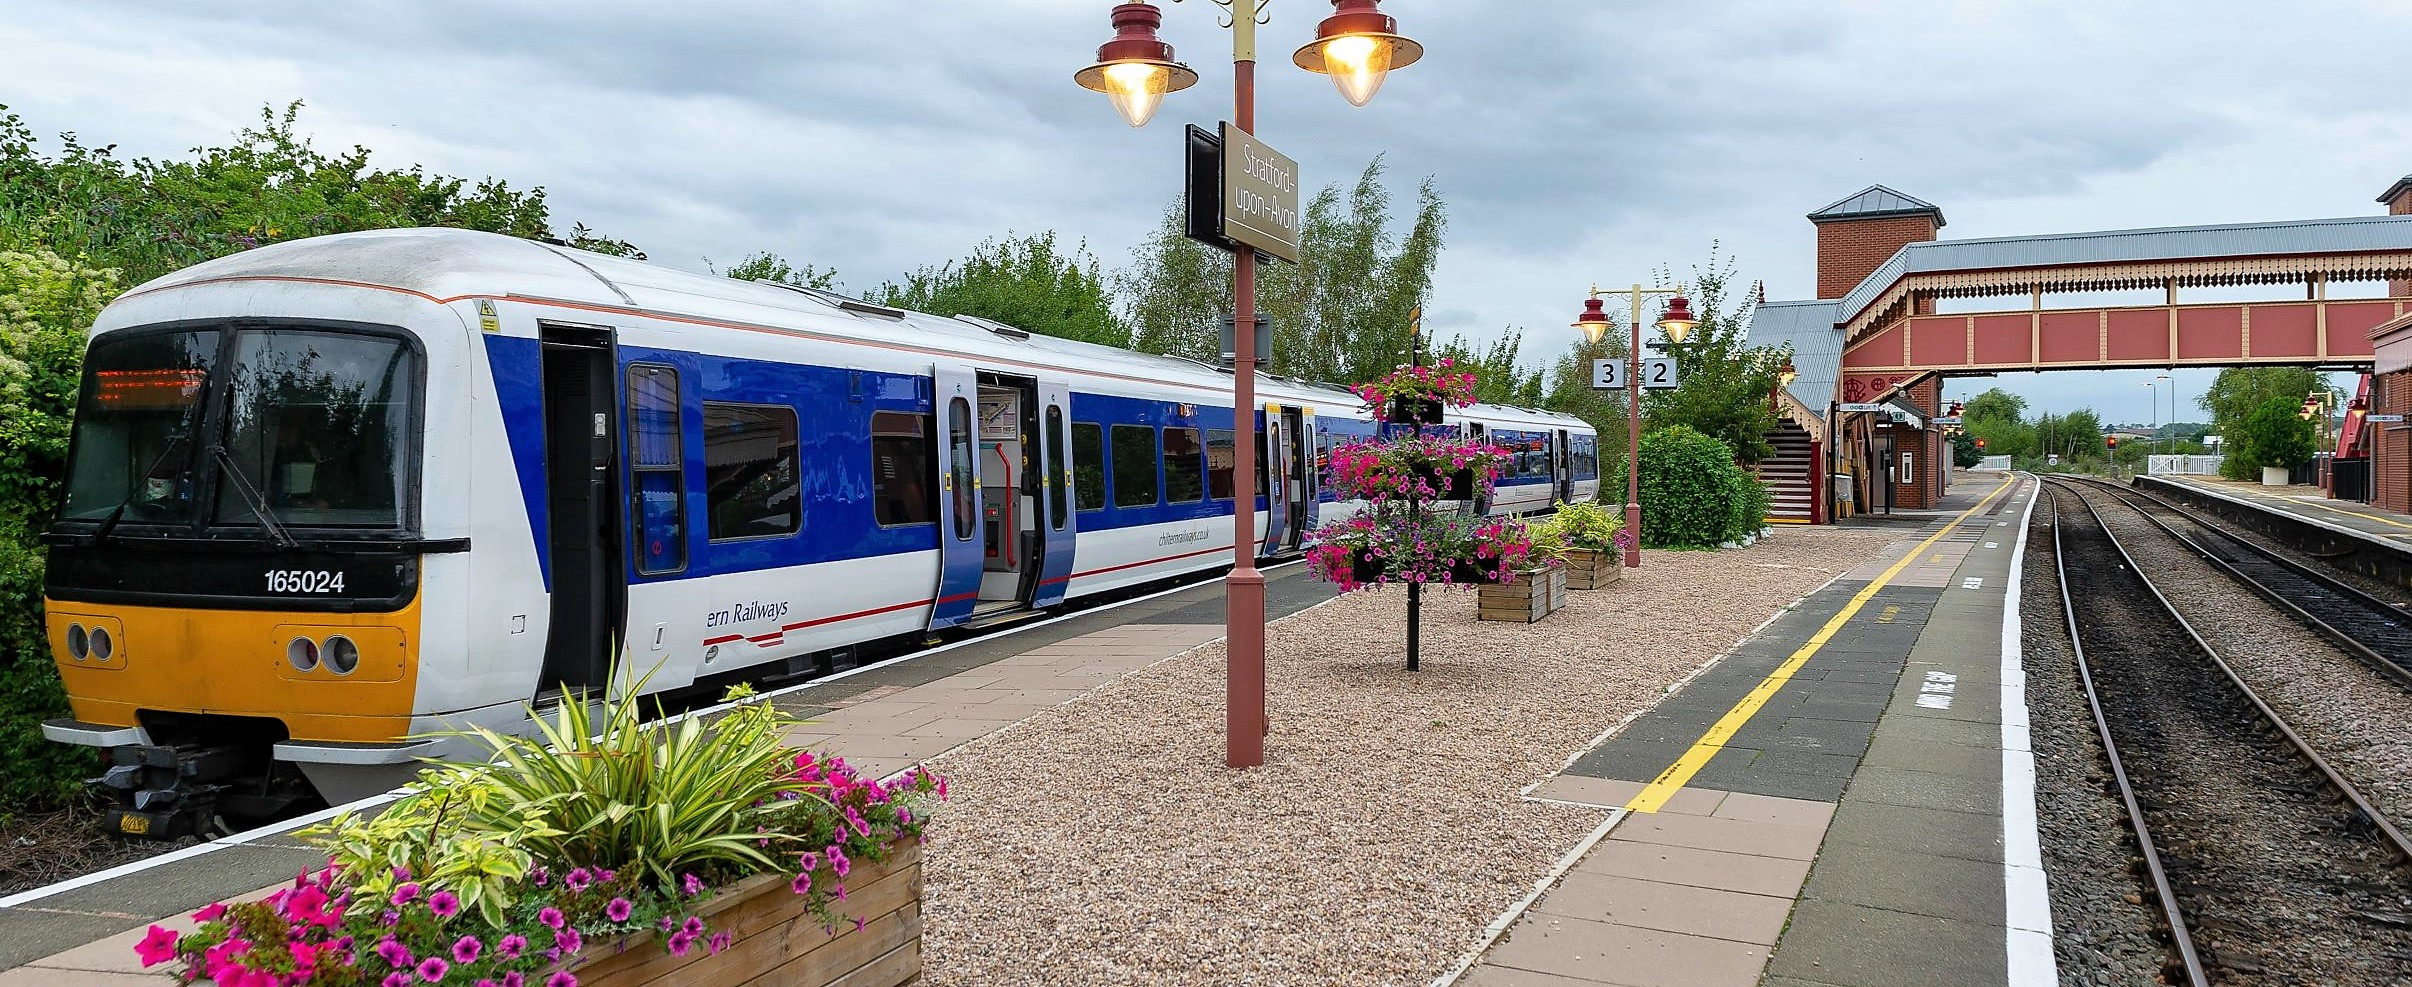 Chiltern Railways announces it's May timetable and boosts links to Stratford-upon-Avon